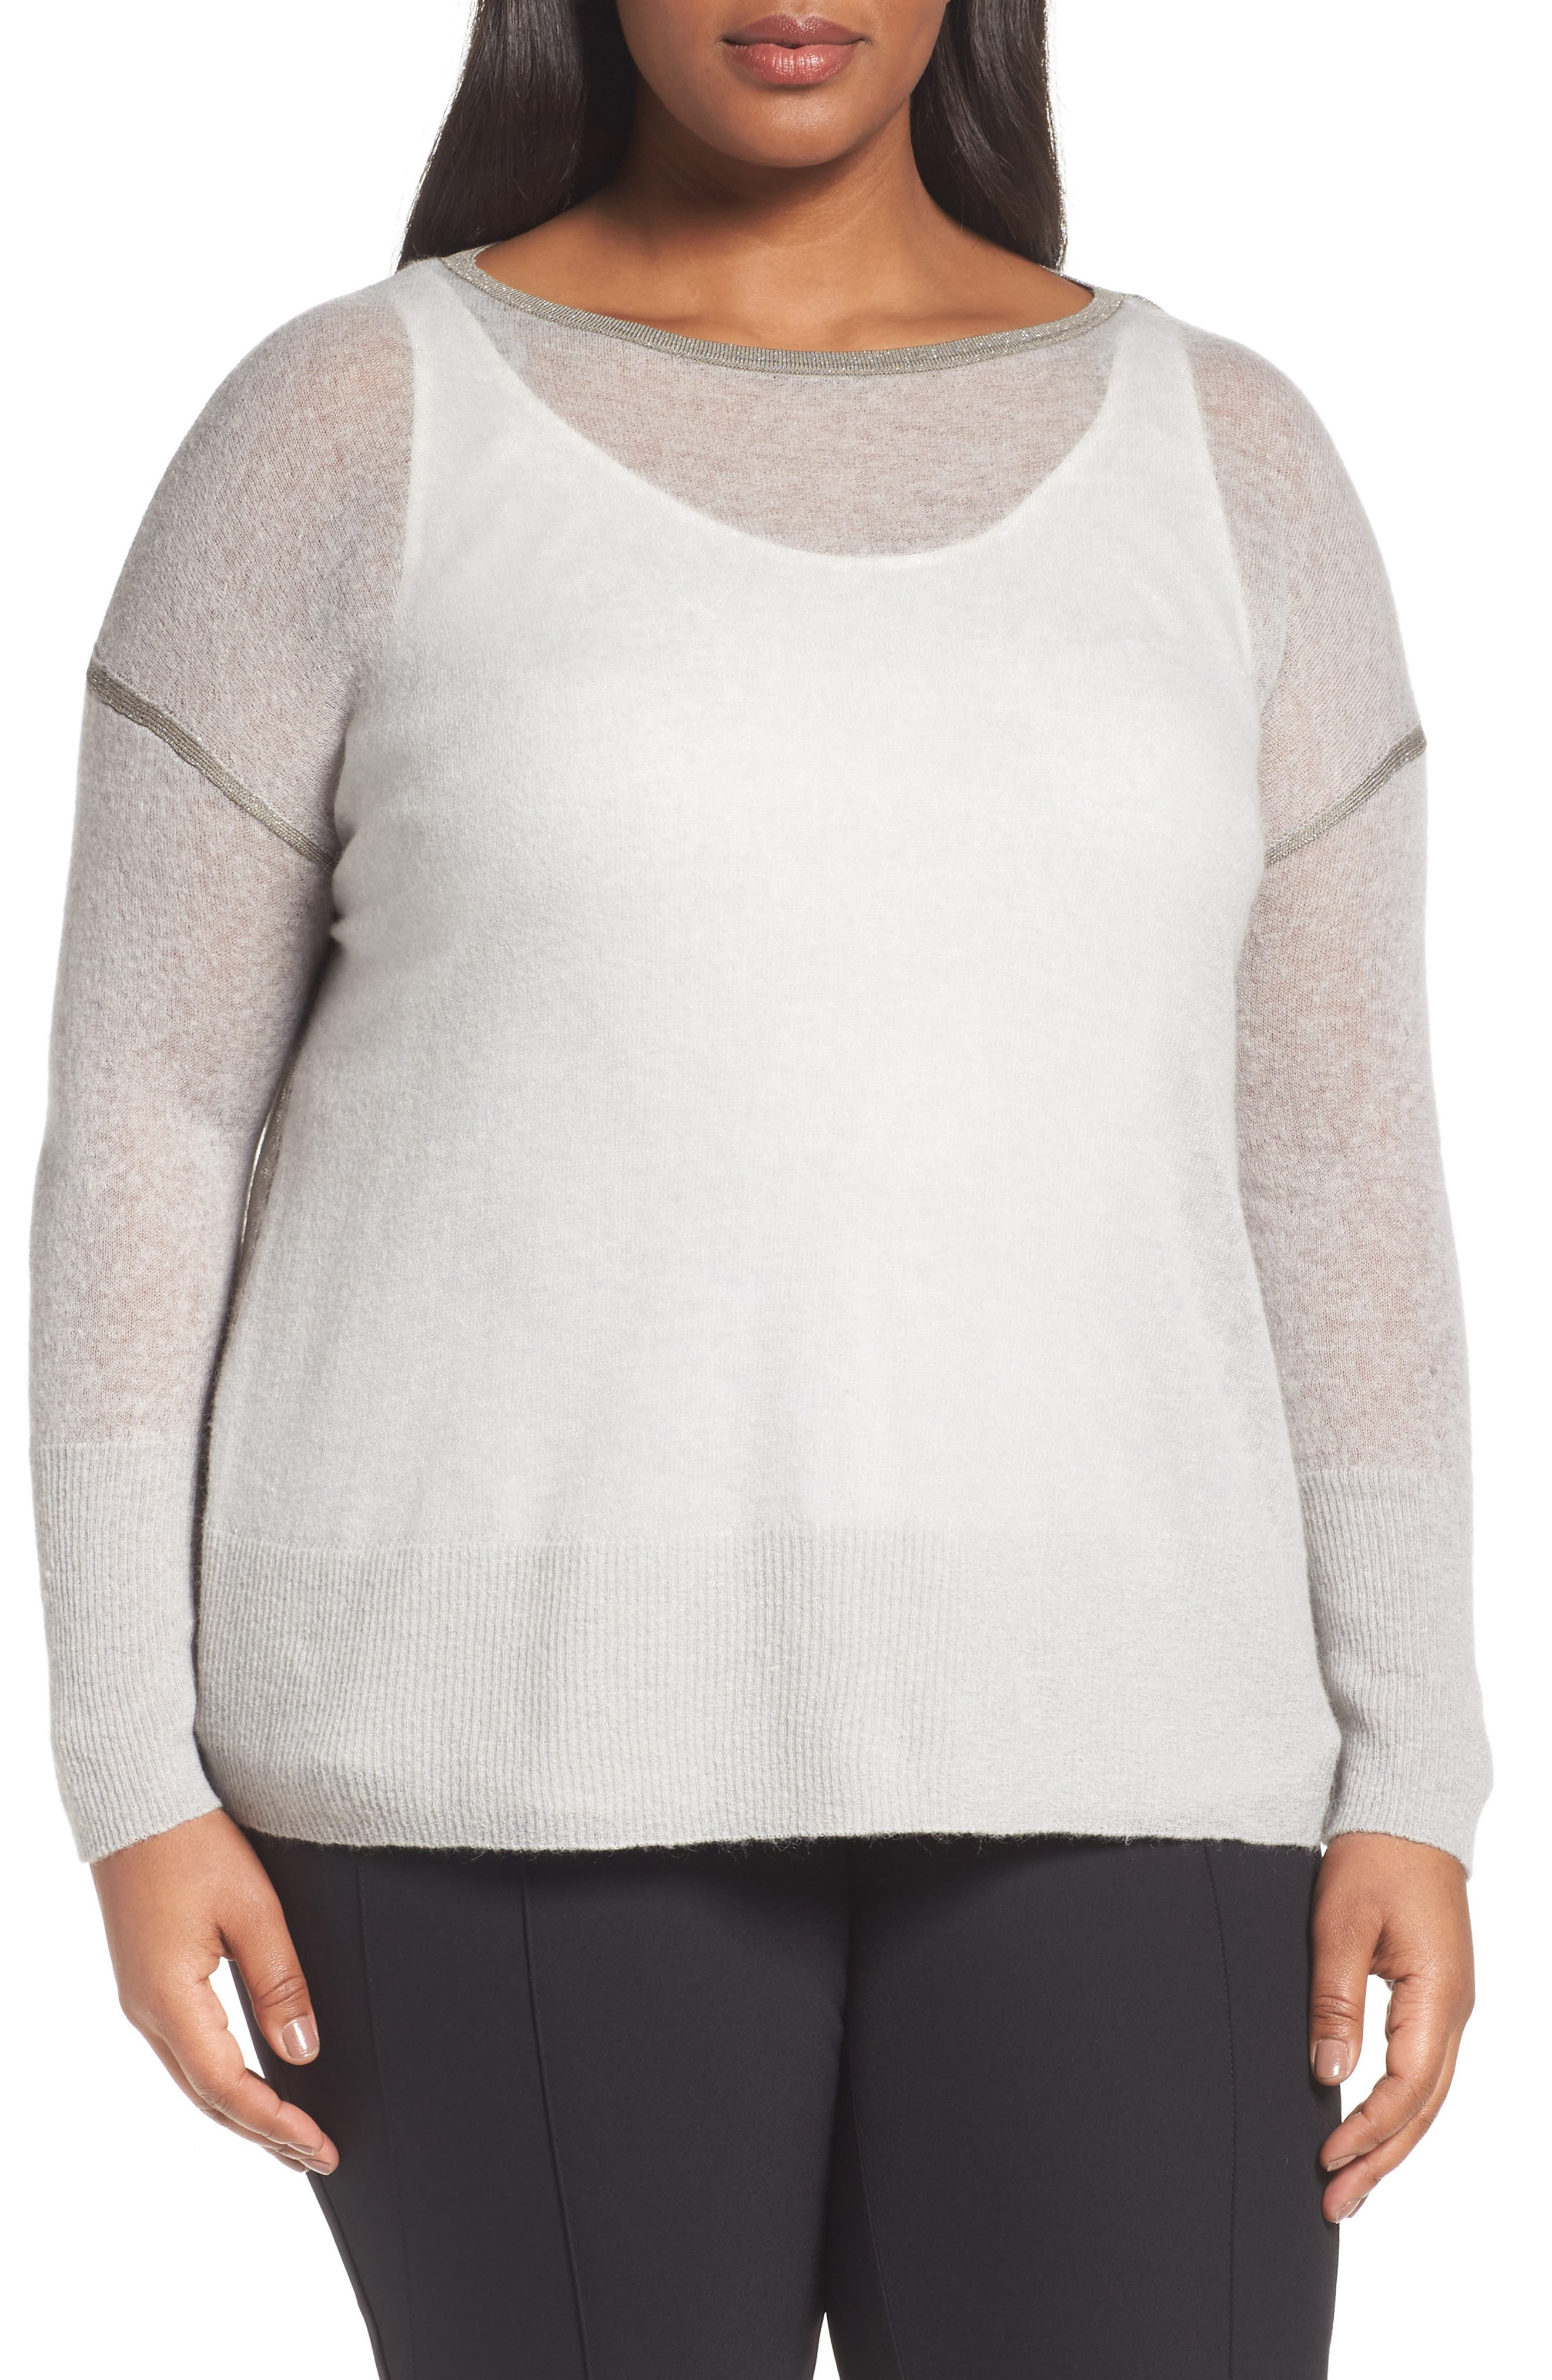 Alternate Image 1 Selected - Lafayette 148 New York Shimmer Trim Sweater with Tank (Plus Size)